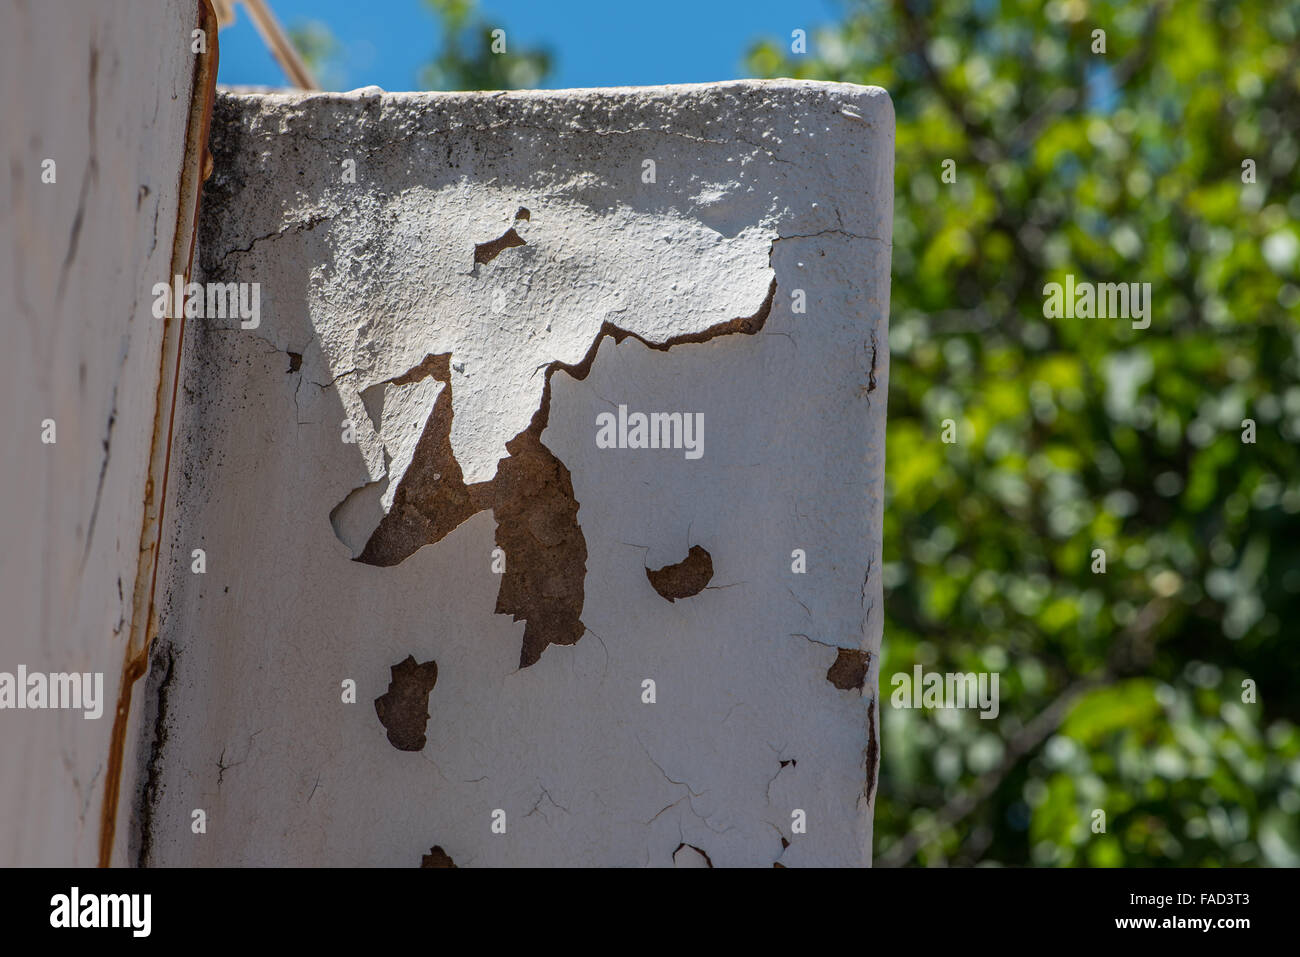 Paint peeling off an outside wall - Stock Image